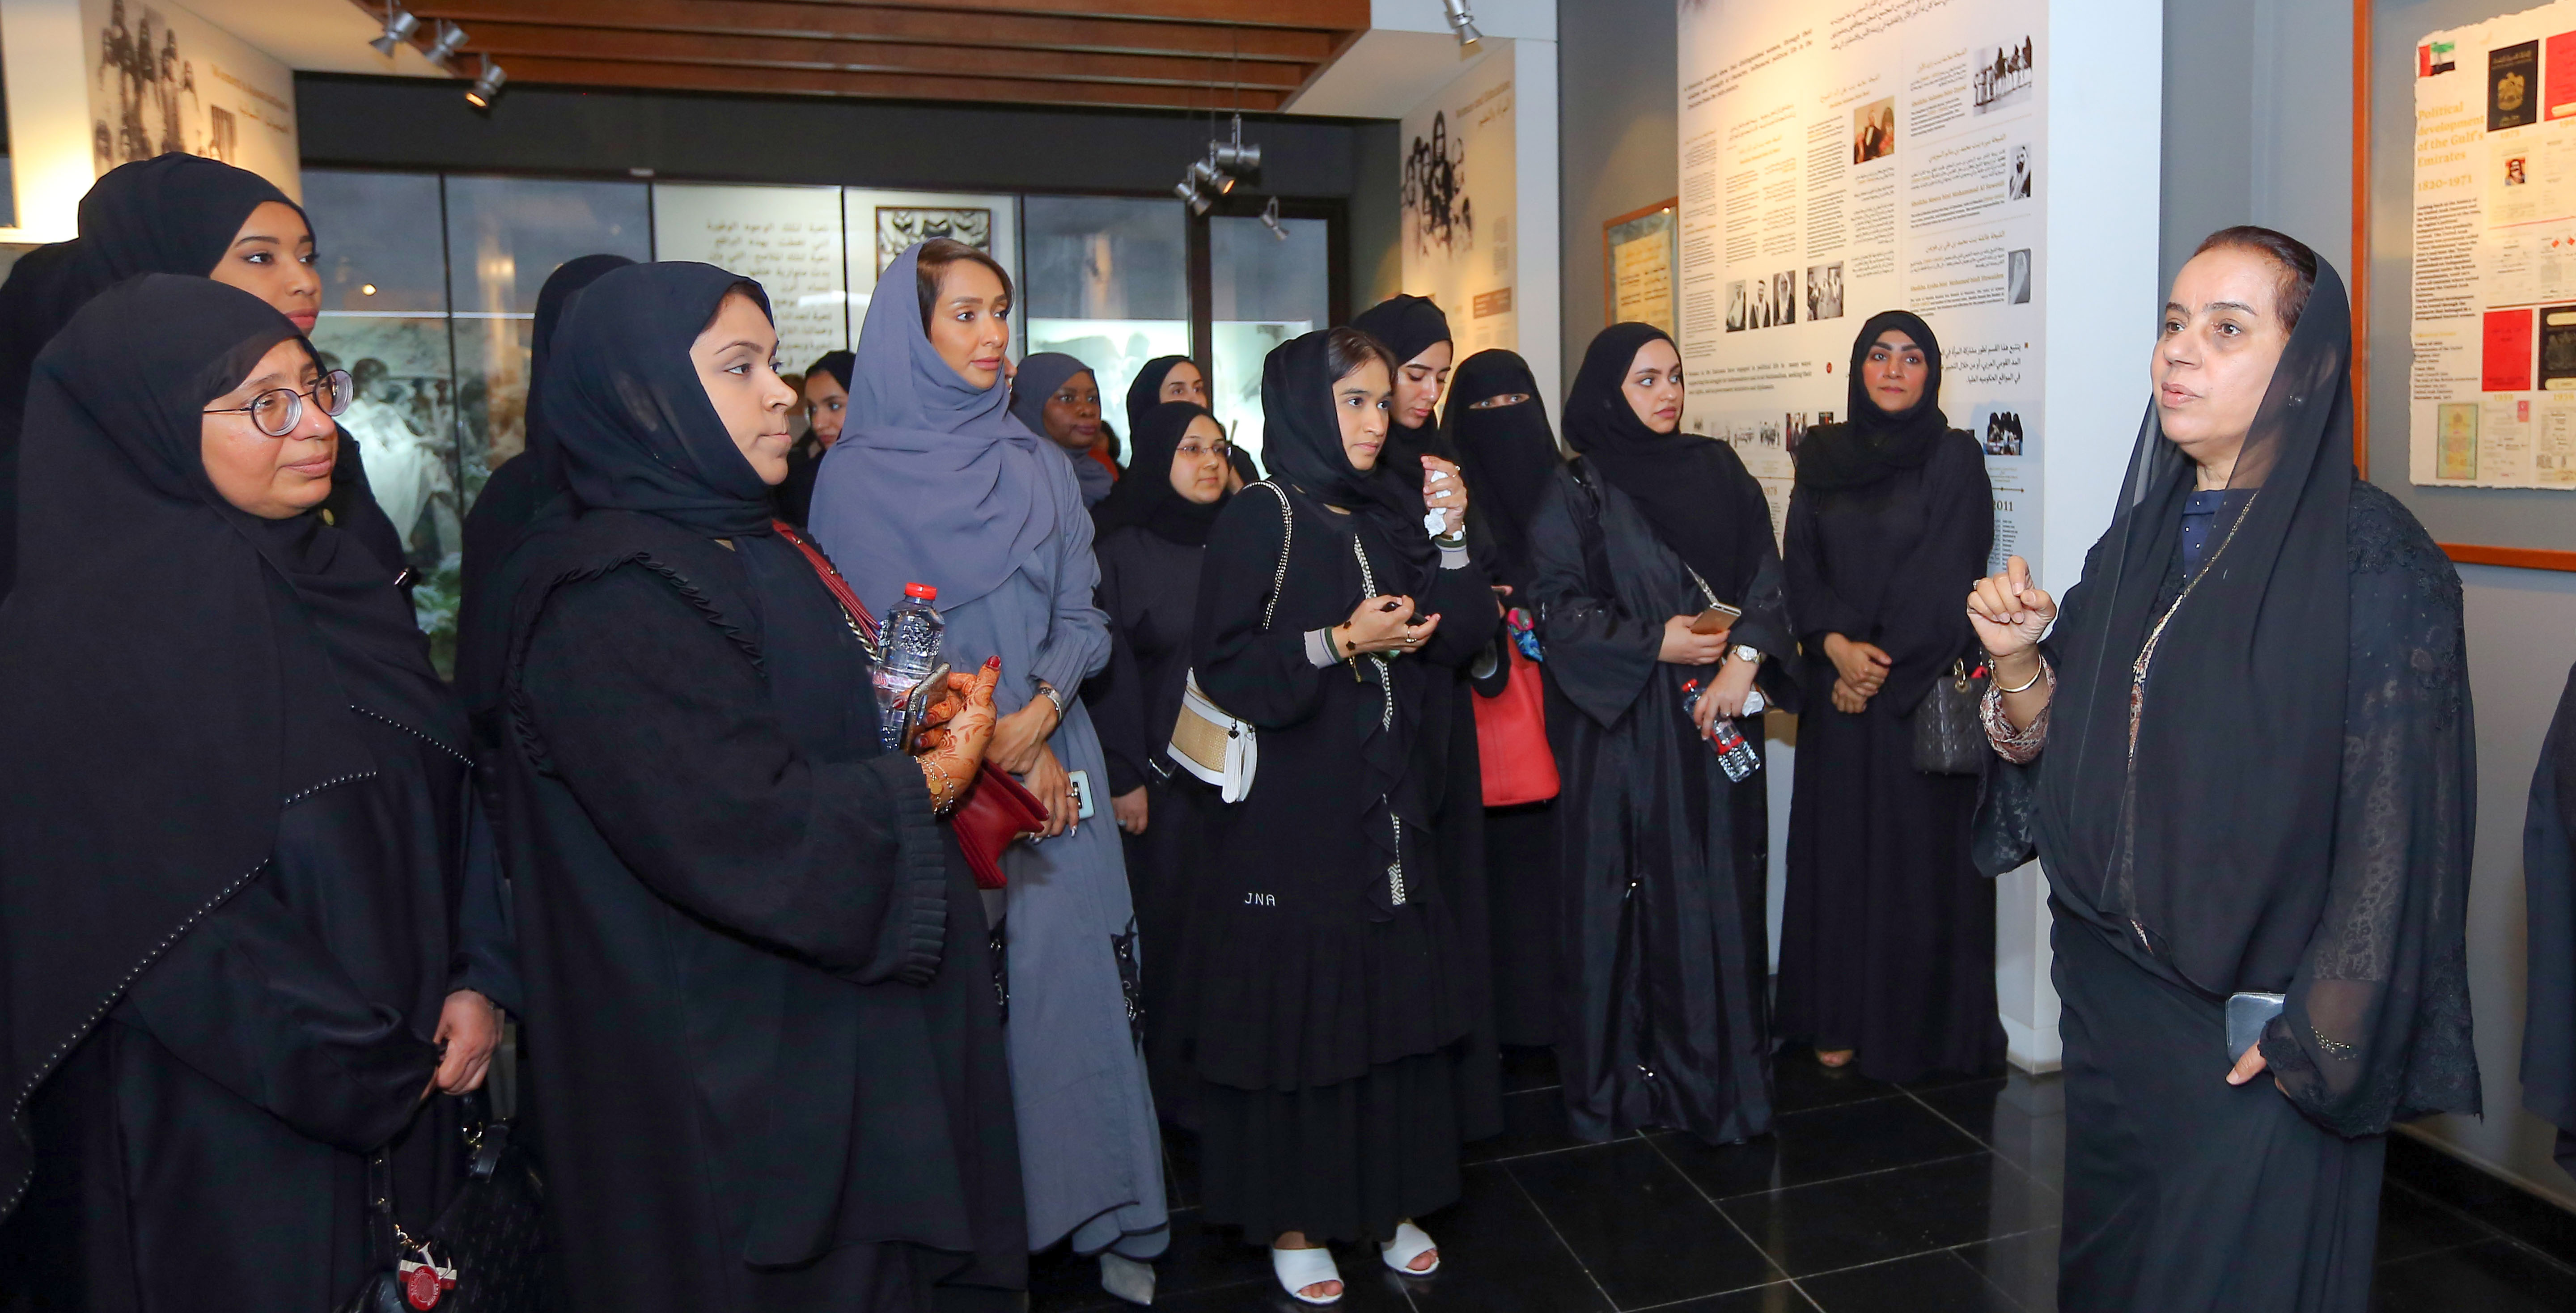 DEWA's Women Committee organises visit for its female employees to Women's Museum in Dubai